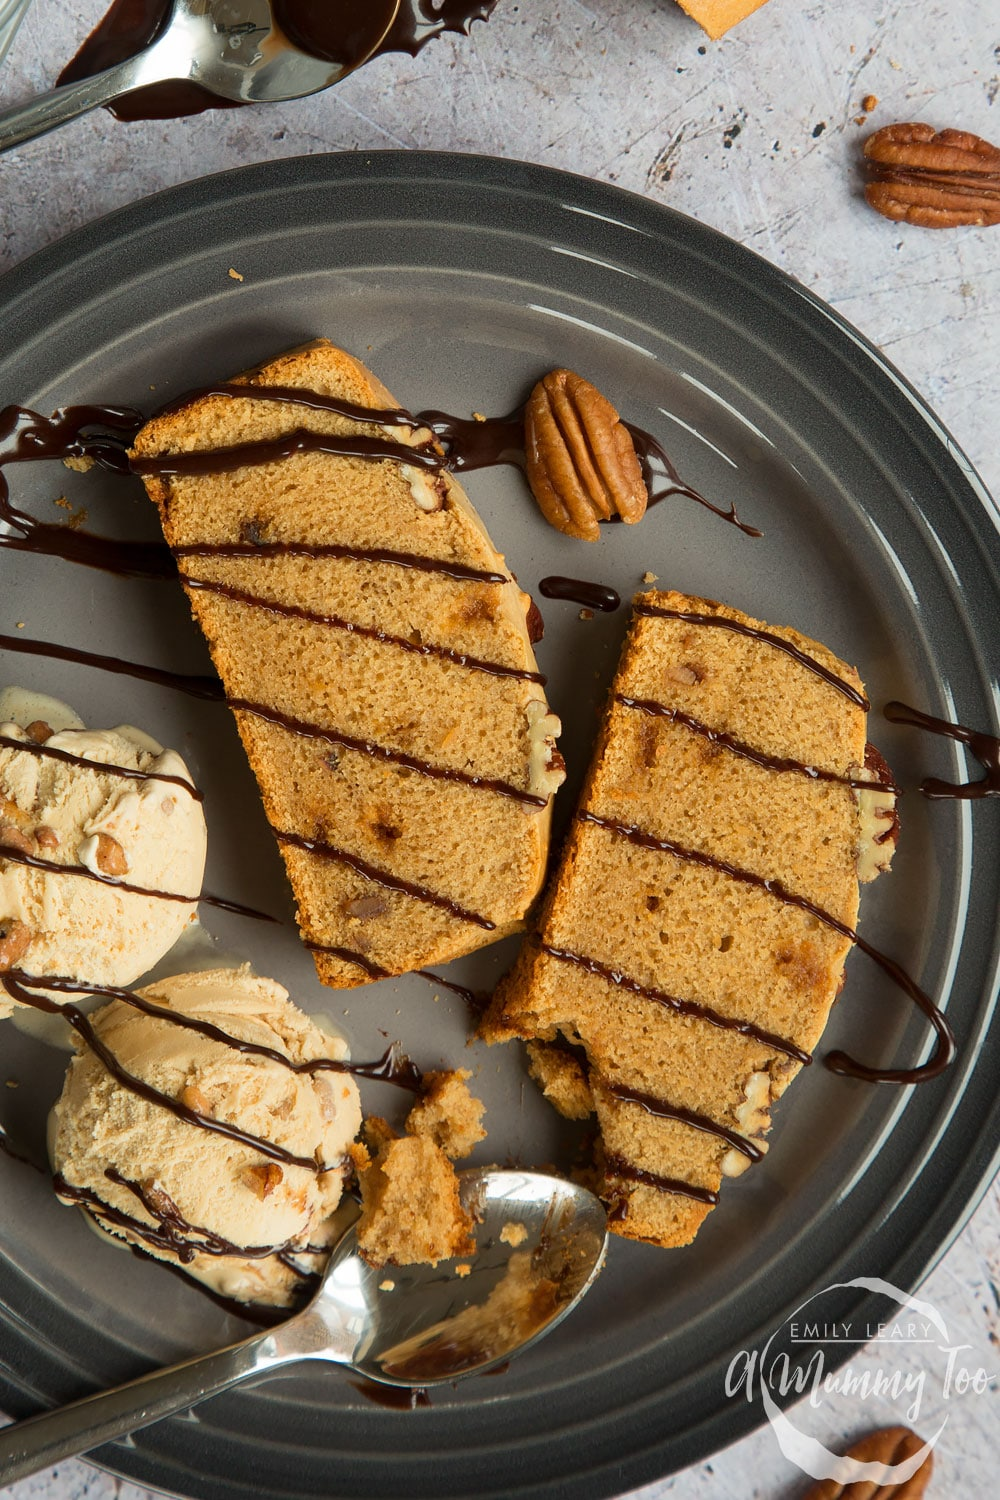 Sliced, freshly baked butterscotch pecan ice cream loaf